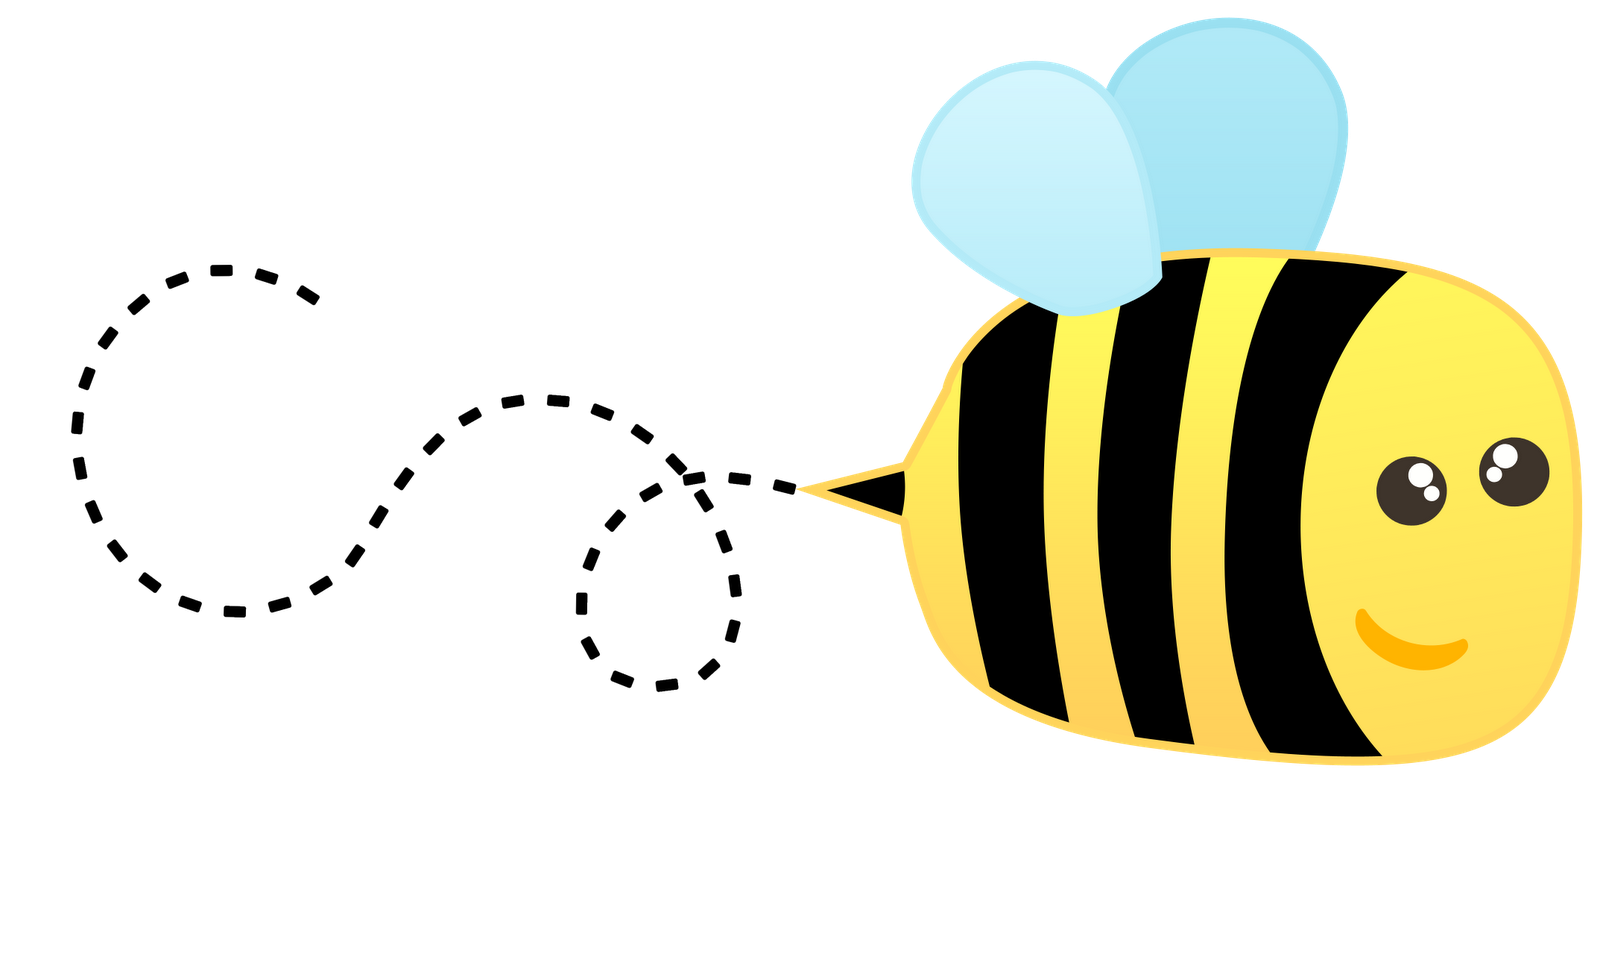 Bee clipart writing clipart library download Free Bee Border Cliparts, Download Free Clip Art, Free Clip Art on ... clipart library download